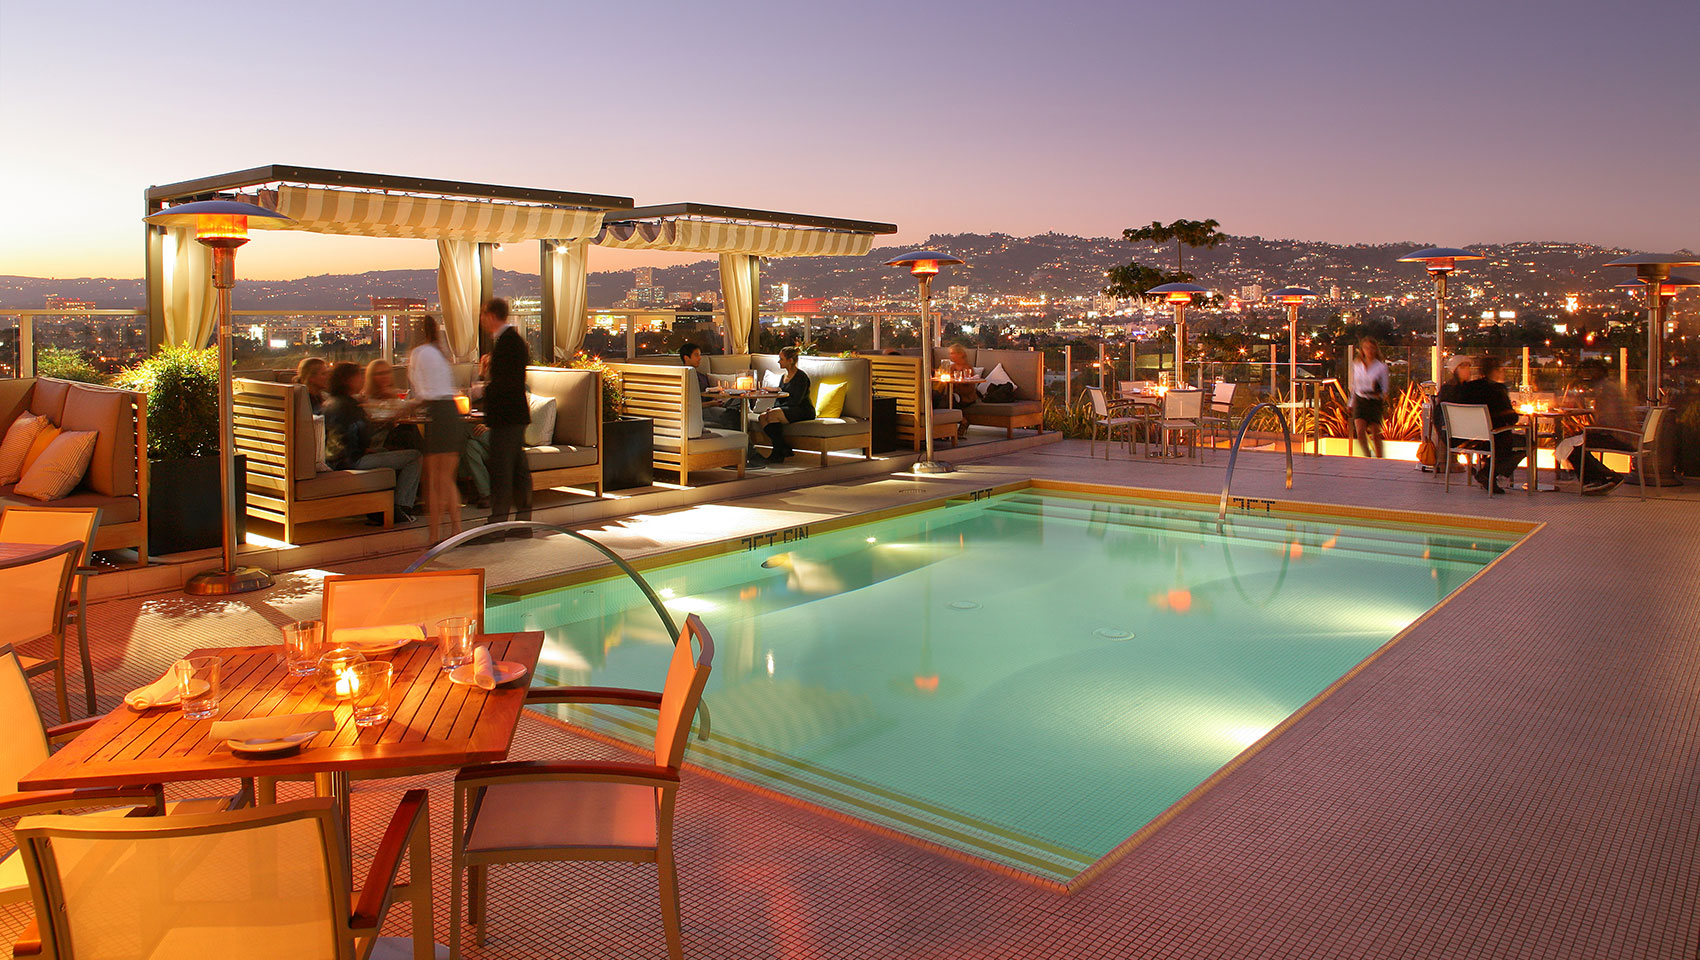 Kimpton Hotel Wilshire pool deck at night